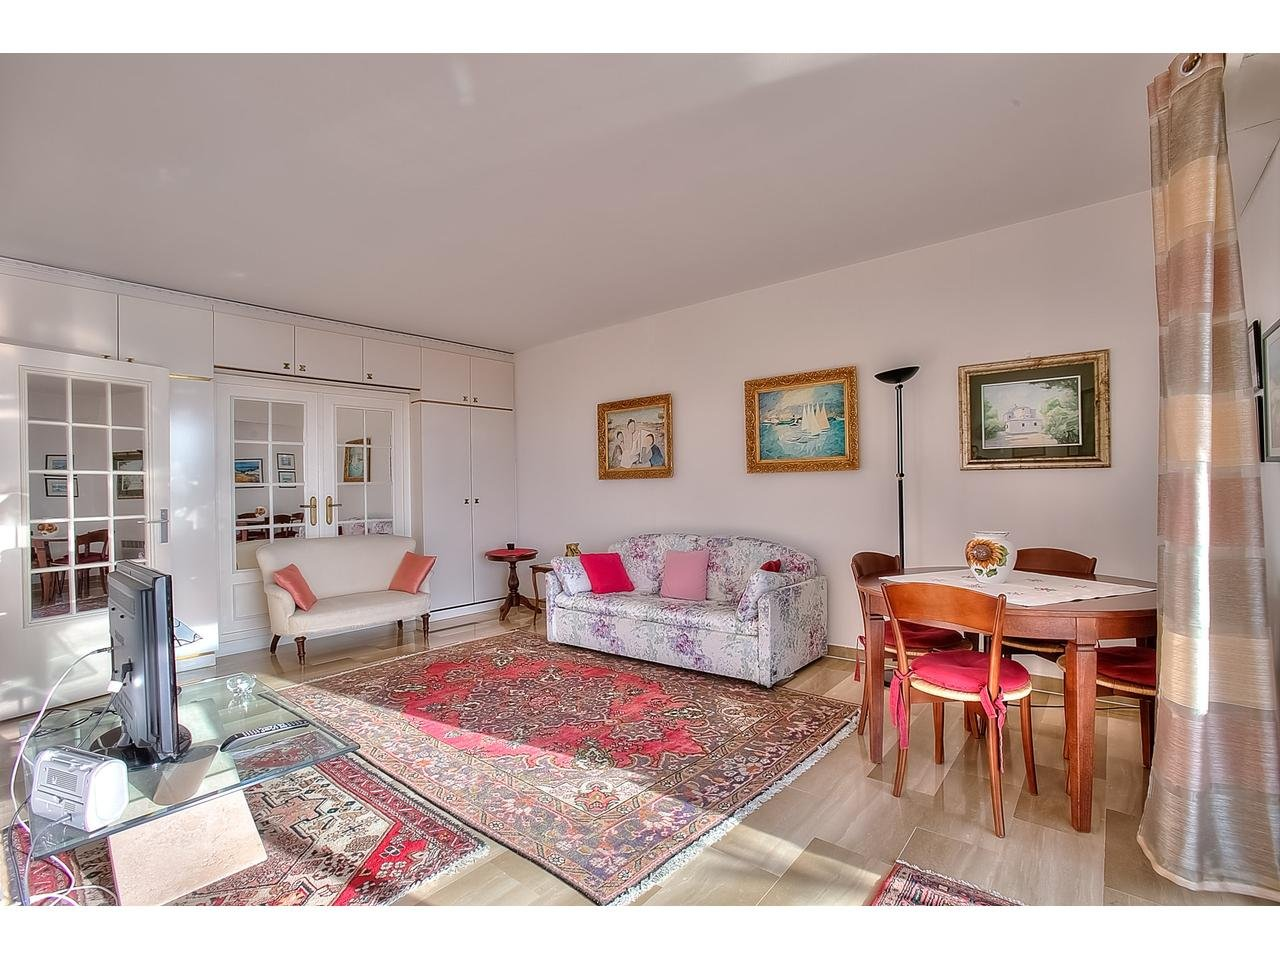 Appartement  2 Rooms 52.8m2  for sale   560 000 €